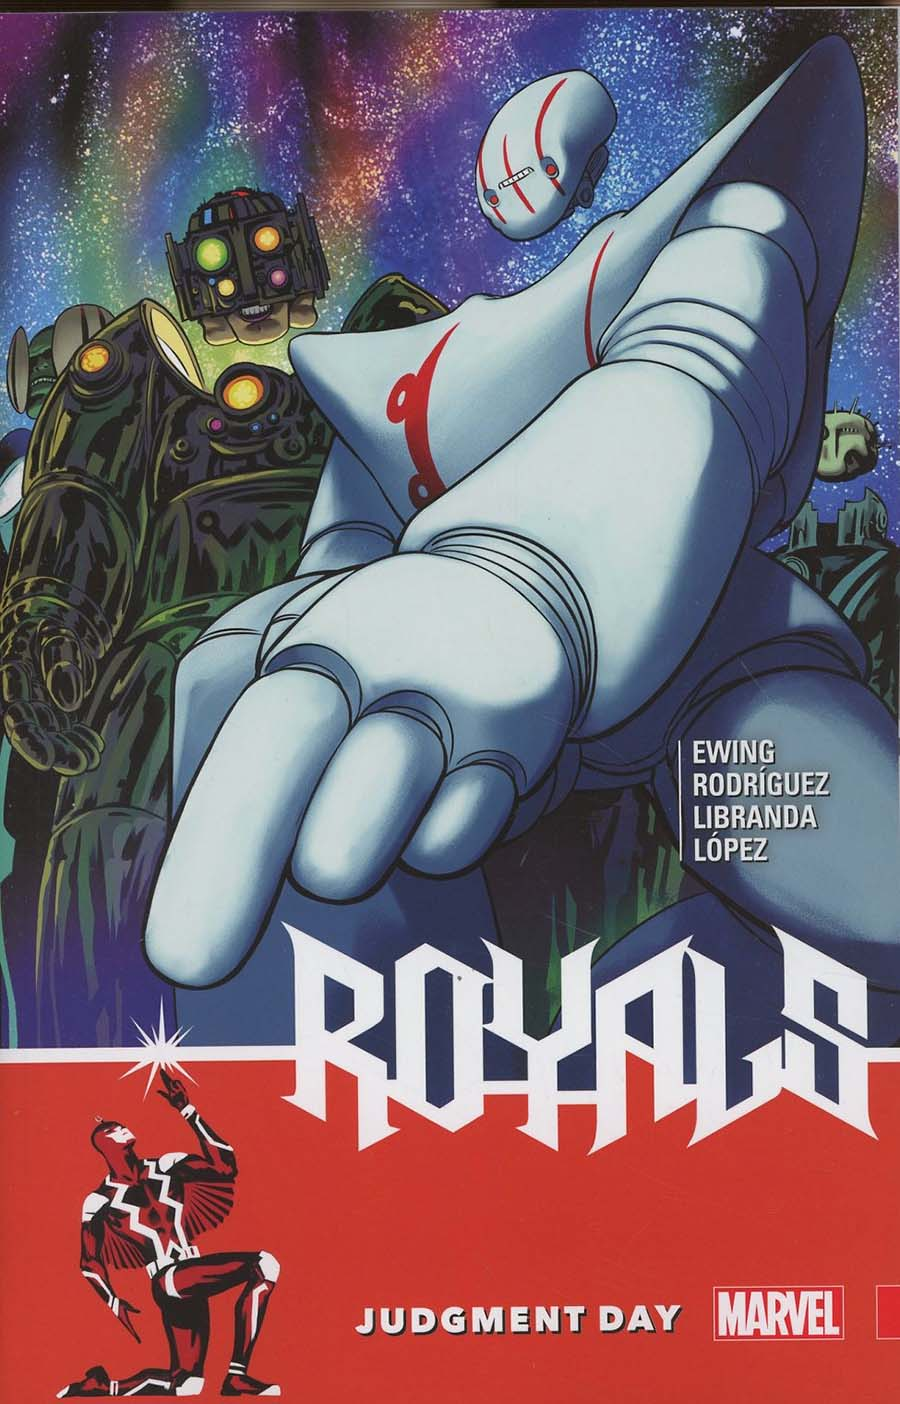 Royals Vol 2 Judgment Day TP